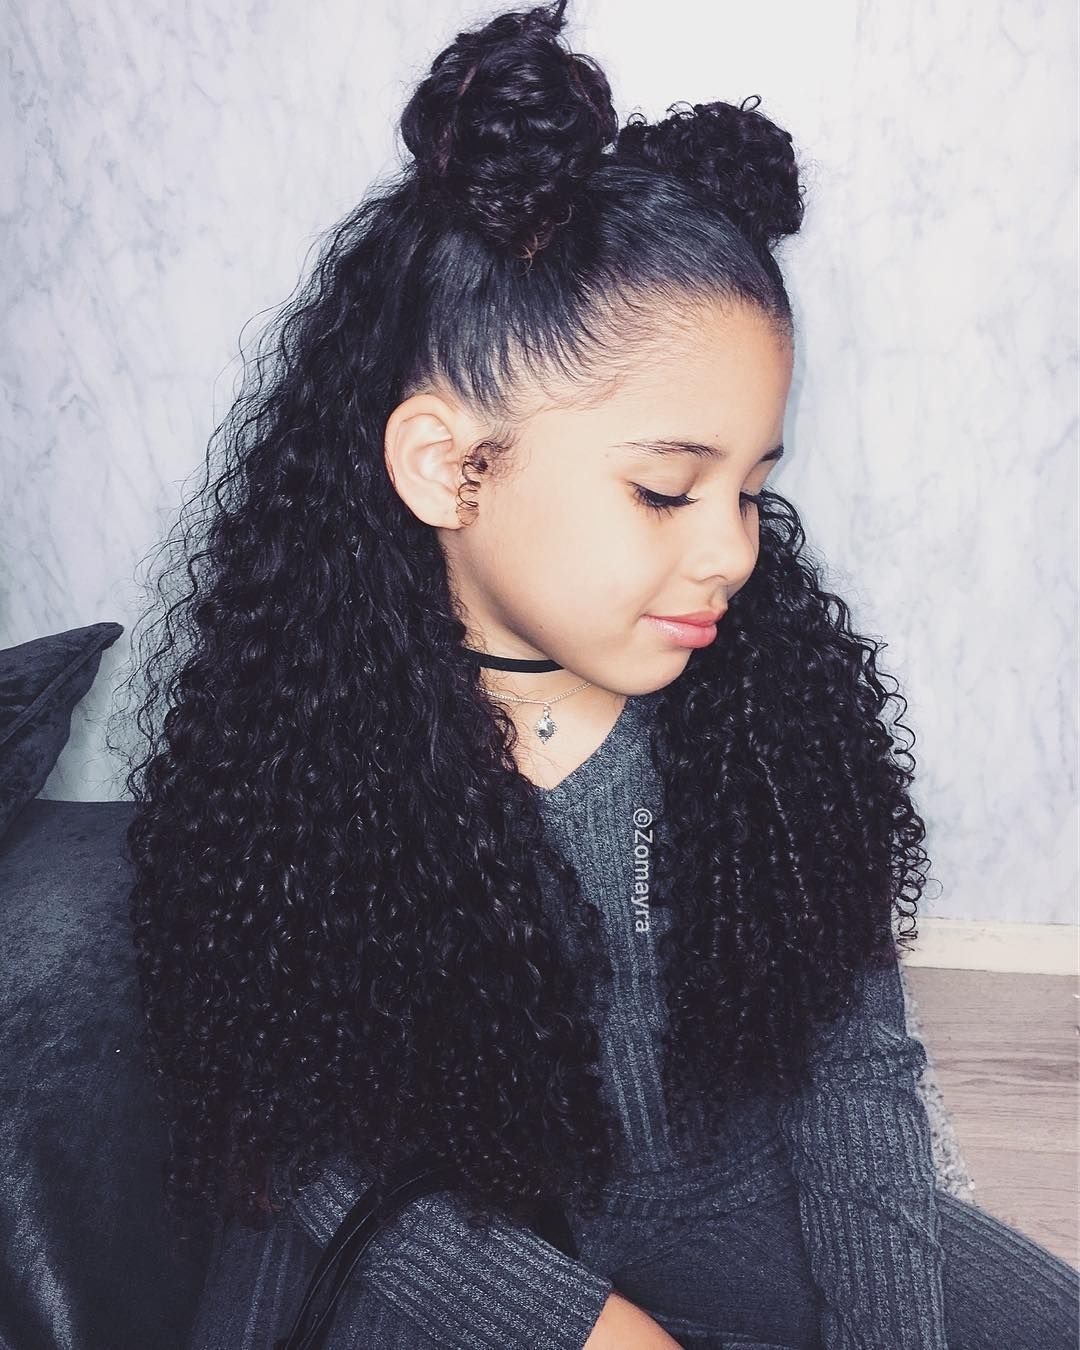 Pin By Omanee Gipson On Future In 2019 | Mixed Curly Hair with regard to Mixed Girl Curly Hairstyle